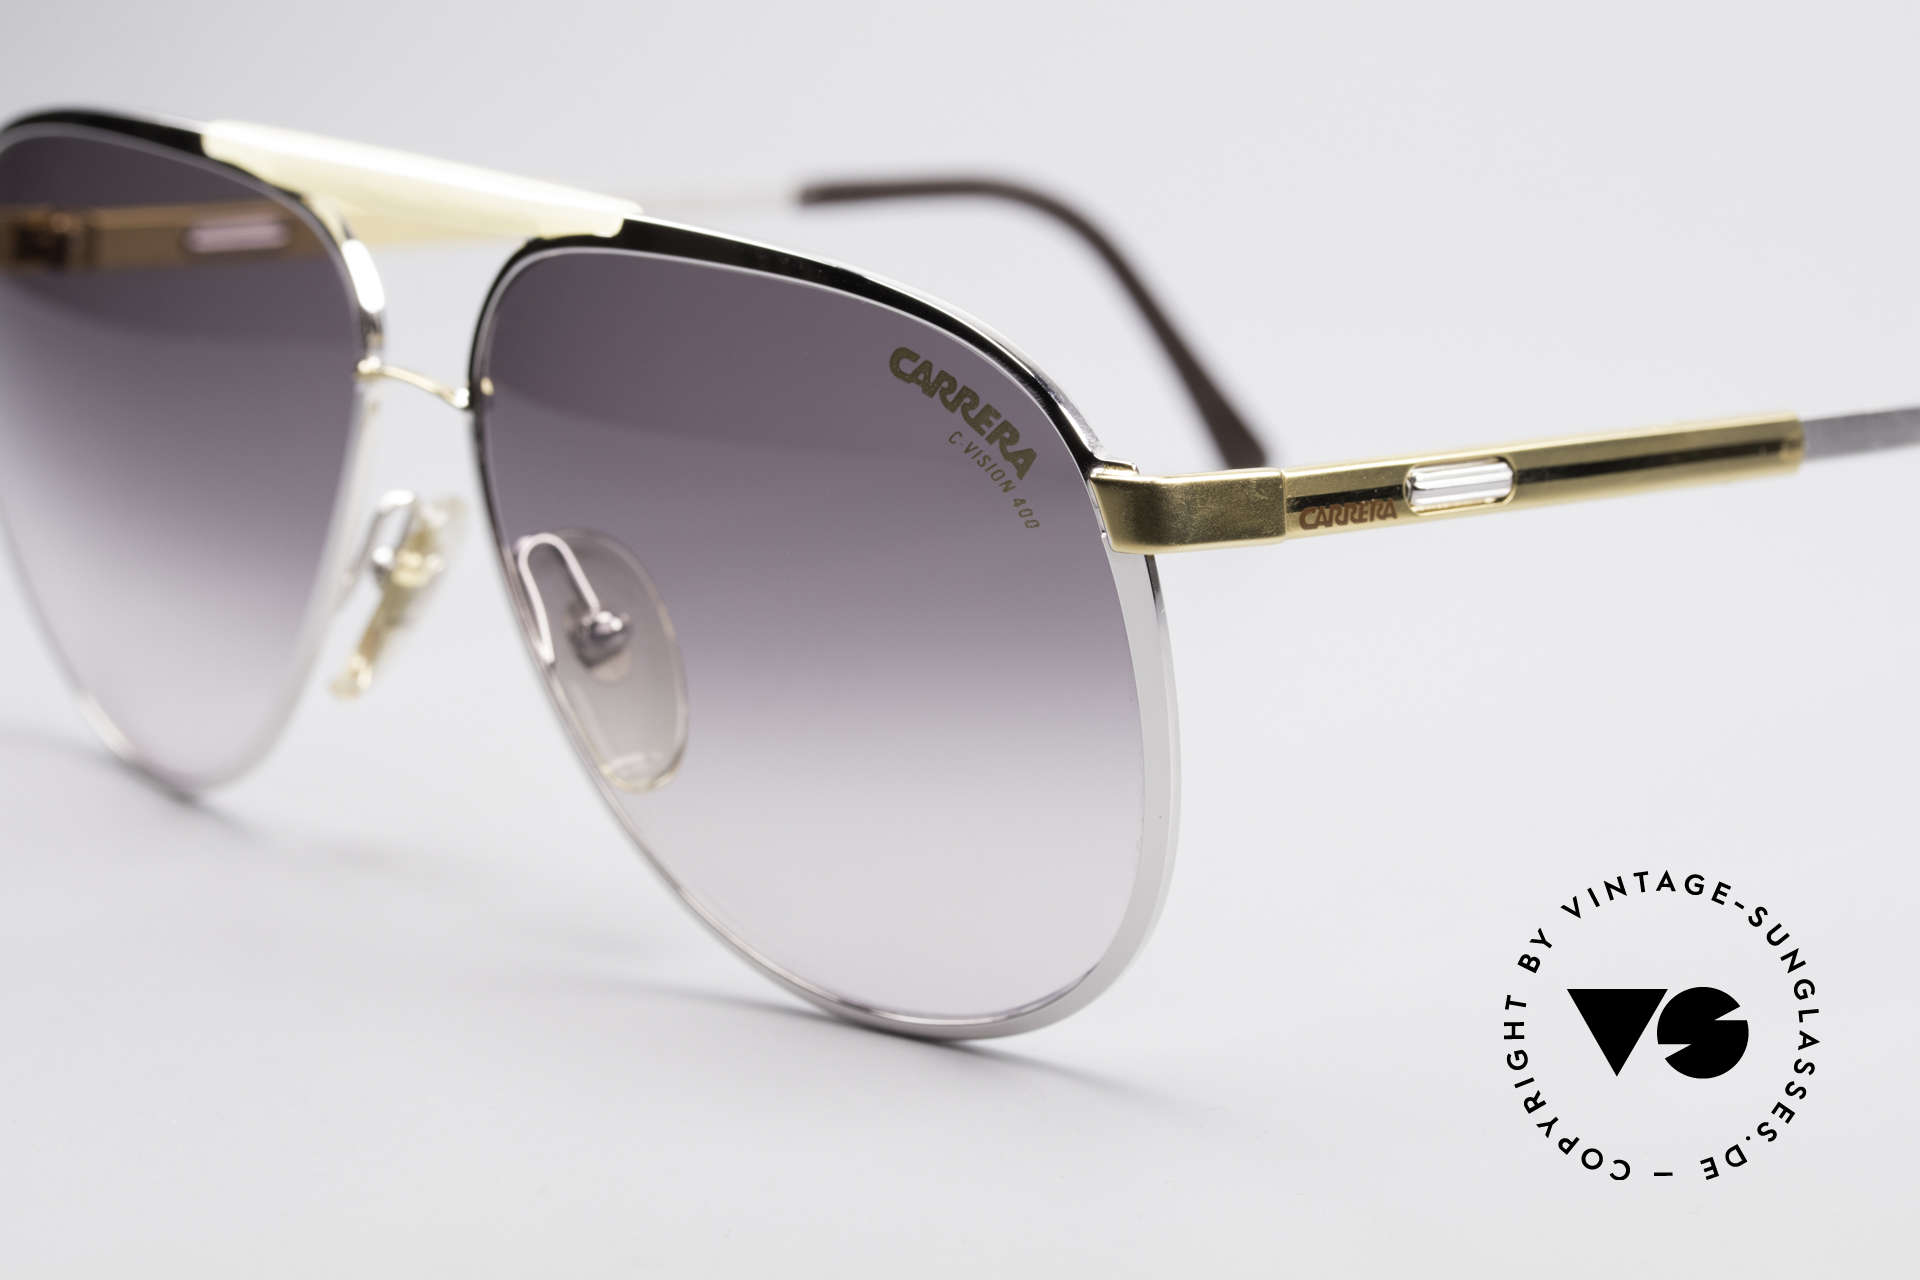 Carrera 5314 - S Adjustable Vario Temples, great Vario System for a variable temple length, Made for Men and Women